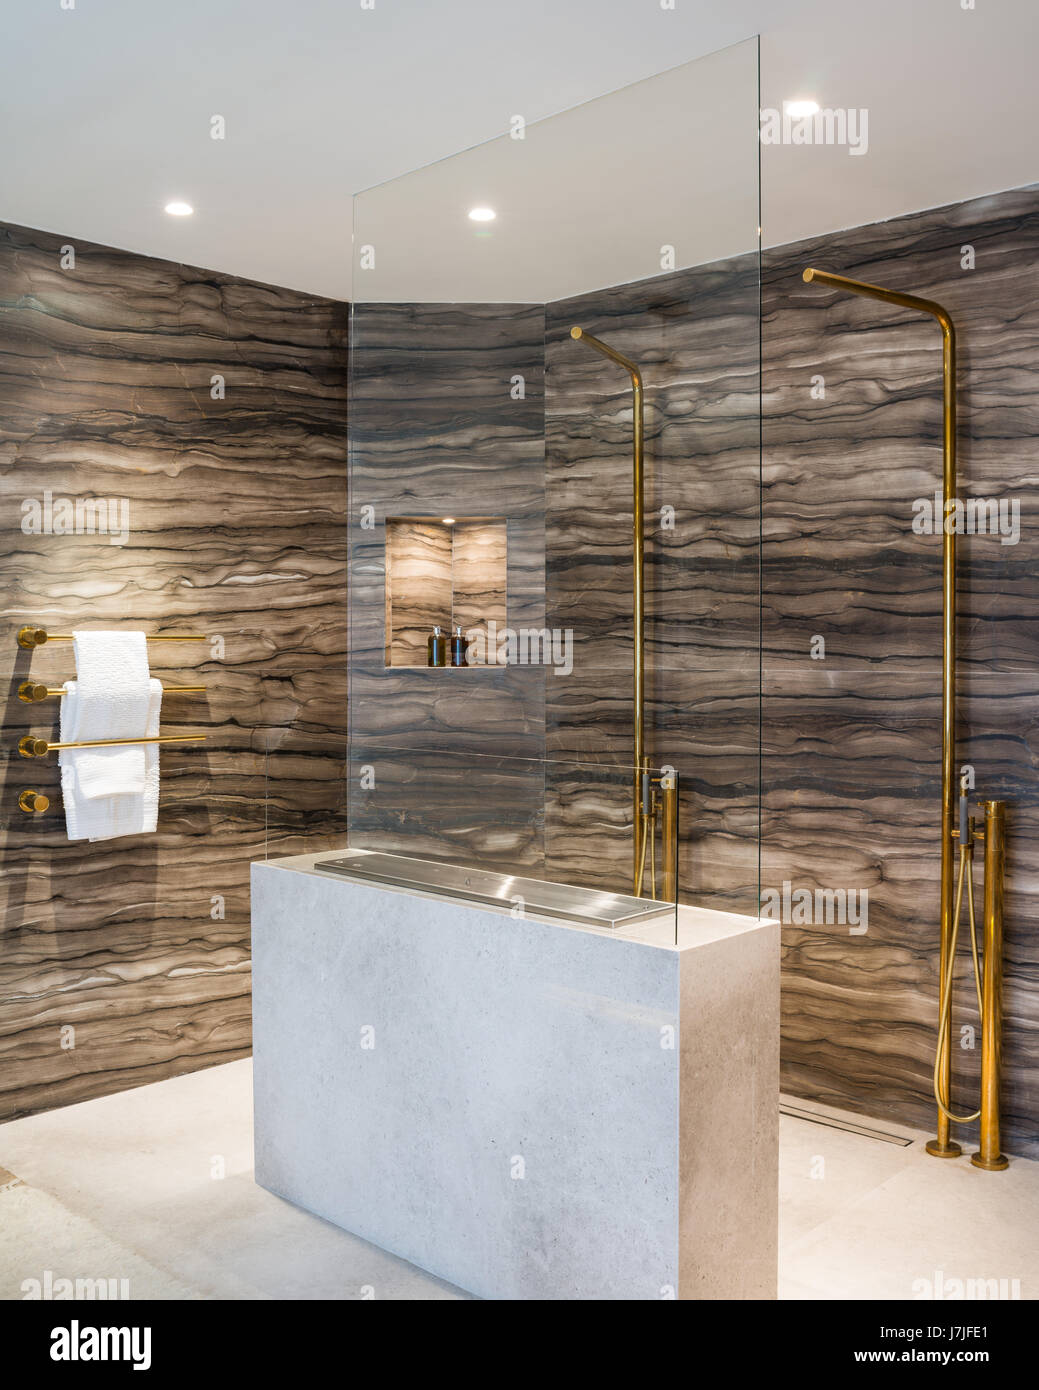 Sienna brown marble lines walls of shower area with gas fire - Stock Image